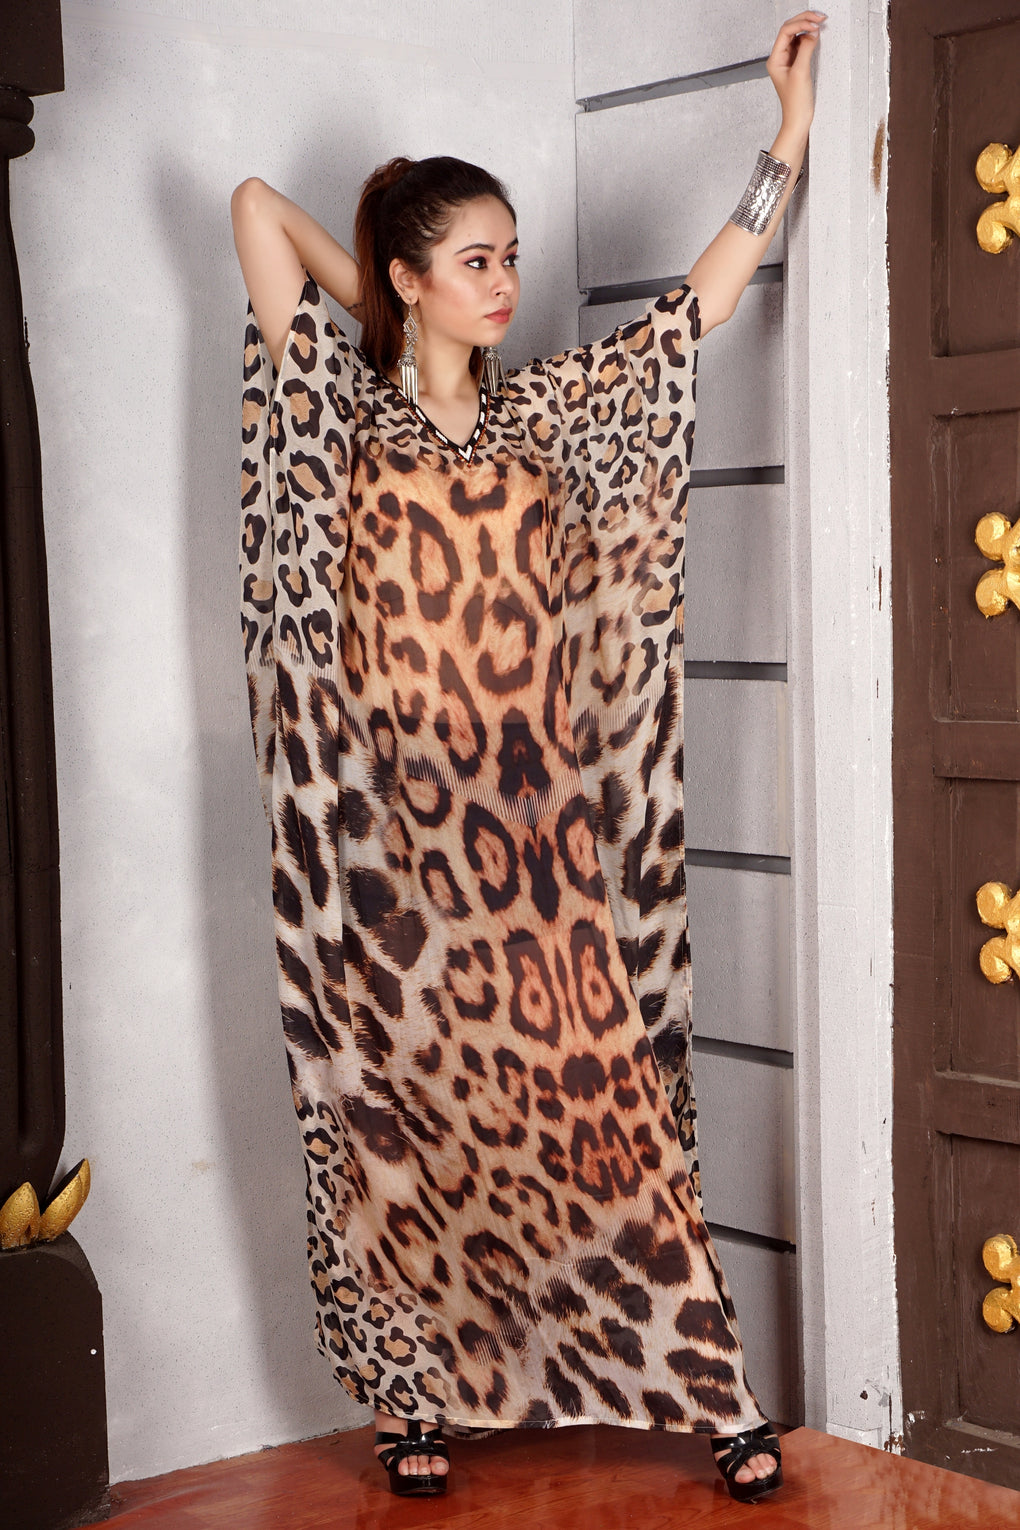 Exclusive Leopard Print Silk kaftan Maxi dress with incensed embellishment of crystals Near V neckline - Silk kaftan